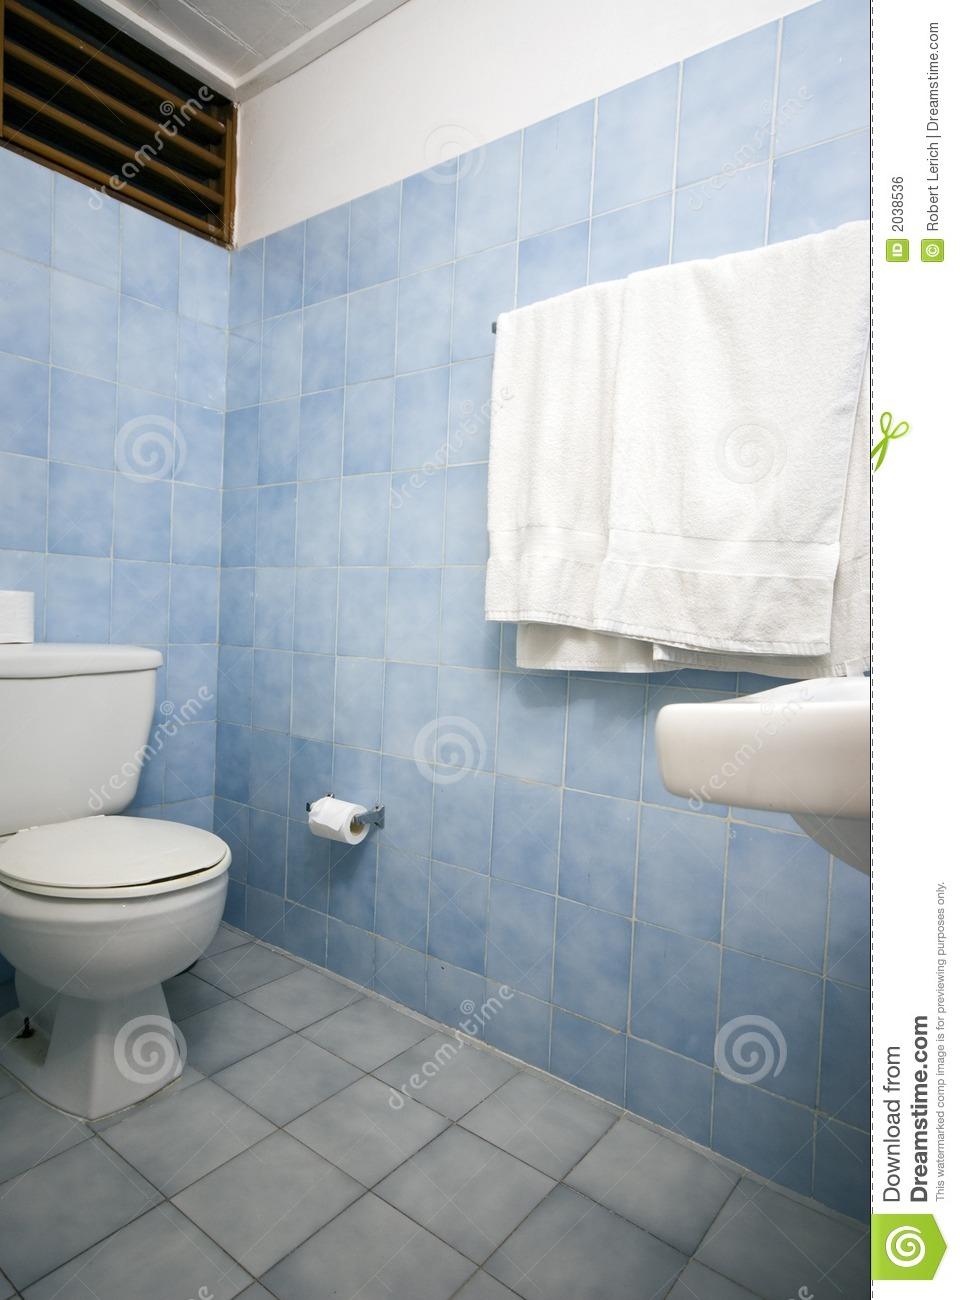 Bathroom with blue tile stock photo. Image of bathroom - 2038536